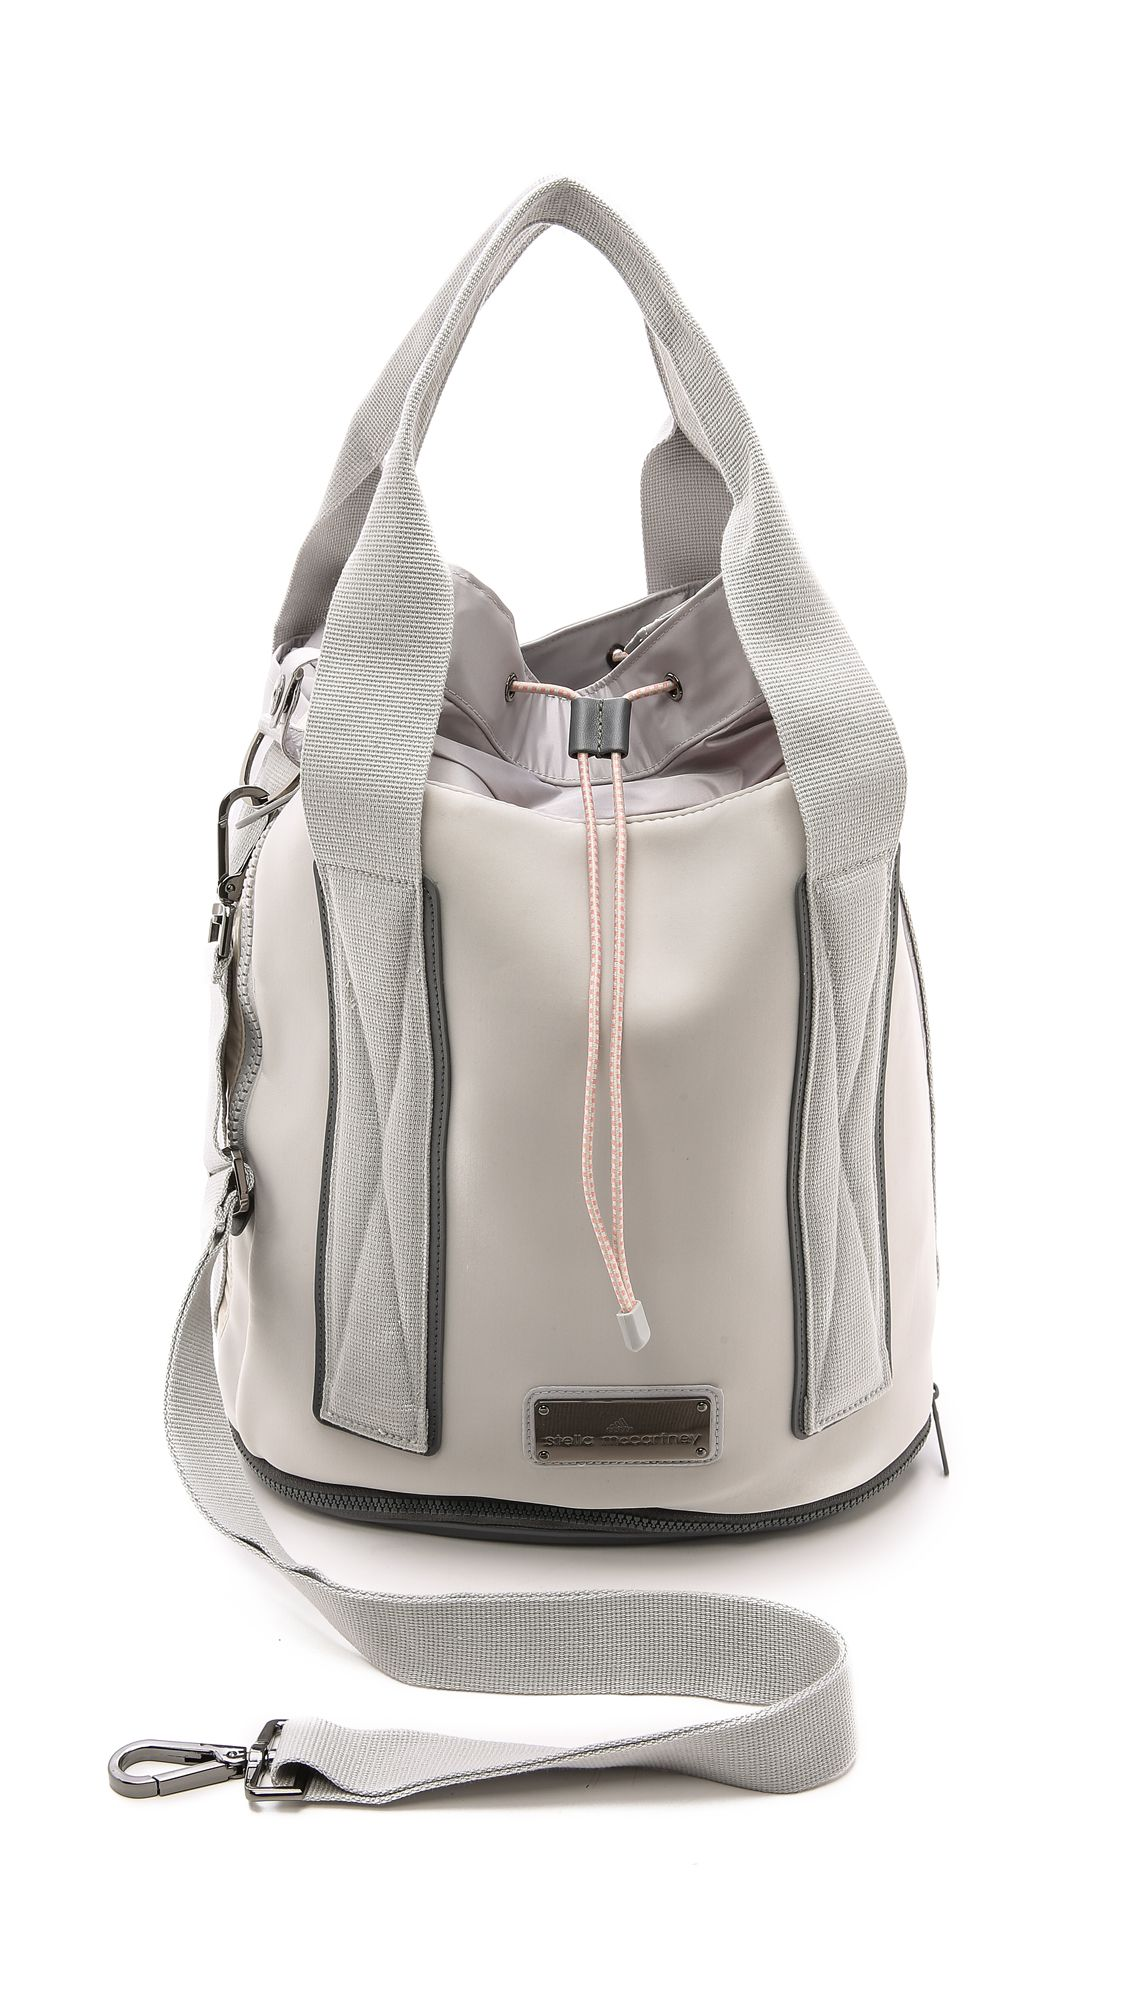 adidas by Stella McCartney Tennis Bag- amazing how she can design a sport  bag and make it look like a chic and trendy statement bag. cf15a4bcb3963